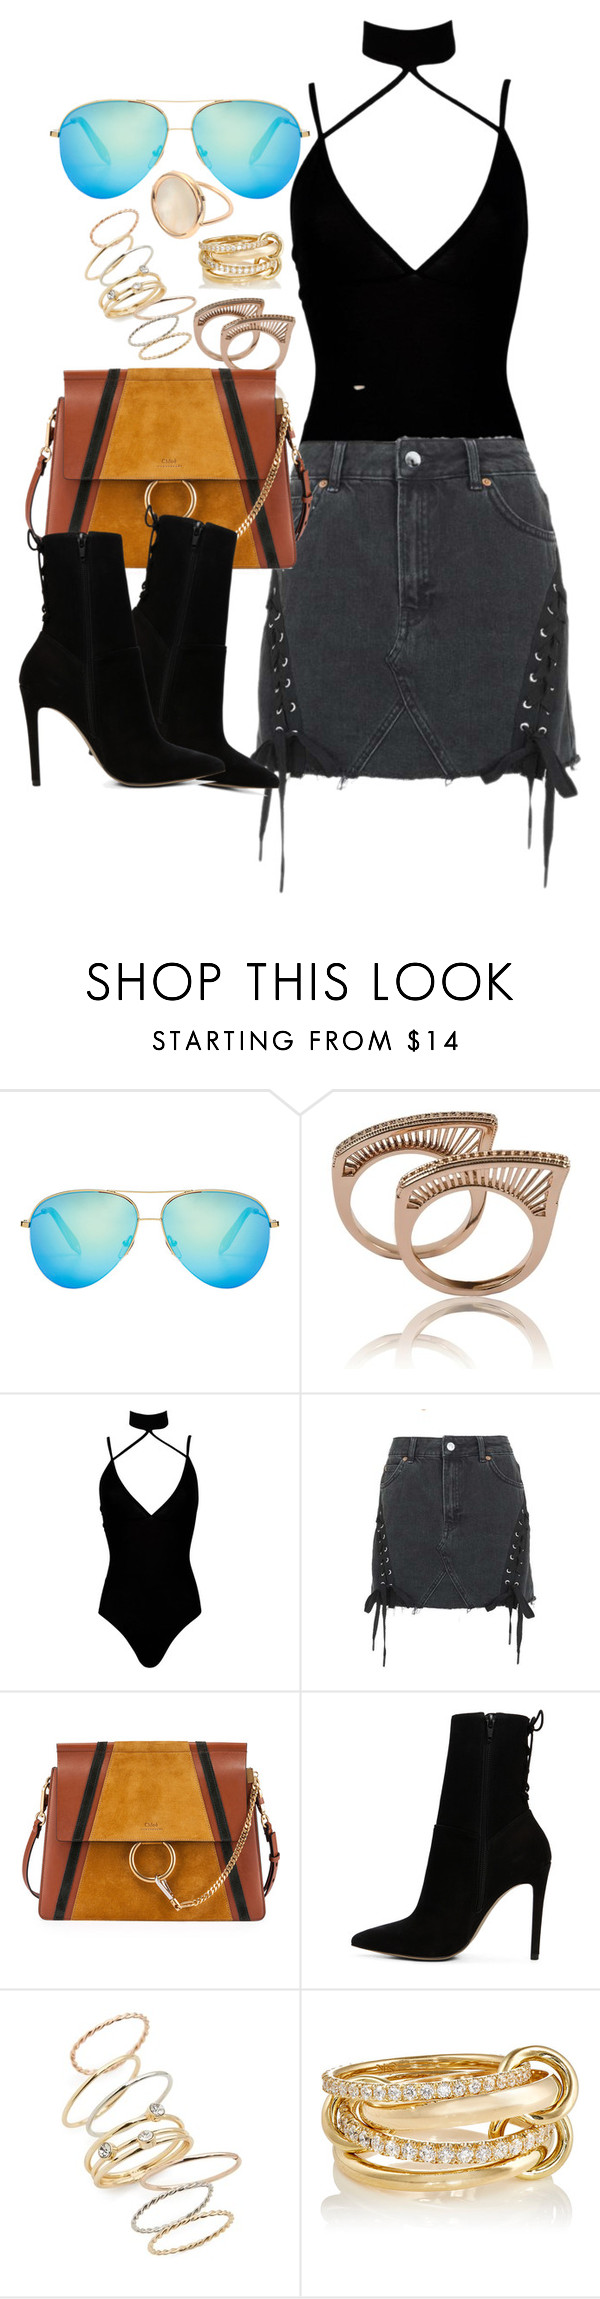 """""""Chloe x Topshop"""" by muddychip-797 ❤ liked on Polyvore featuring Victoria Beckham, Boohoo, Topshop, Chloé, ALDO, BP., SPINELLI KILCOLLIN, Ginette NY, victoriabeckham and chloe"""